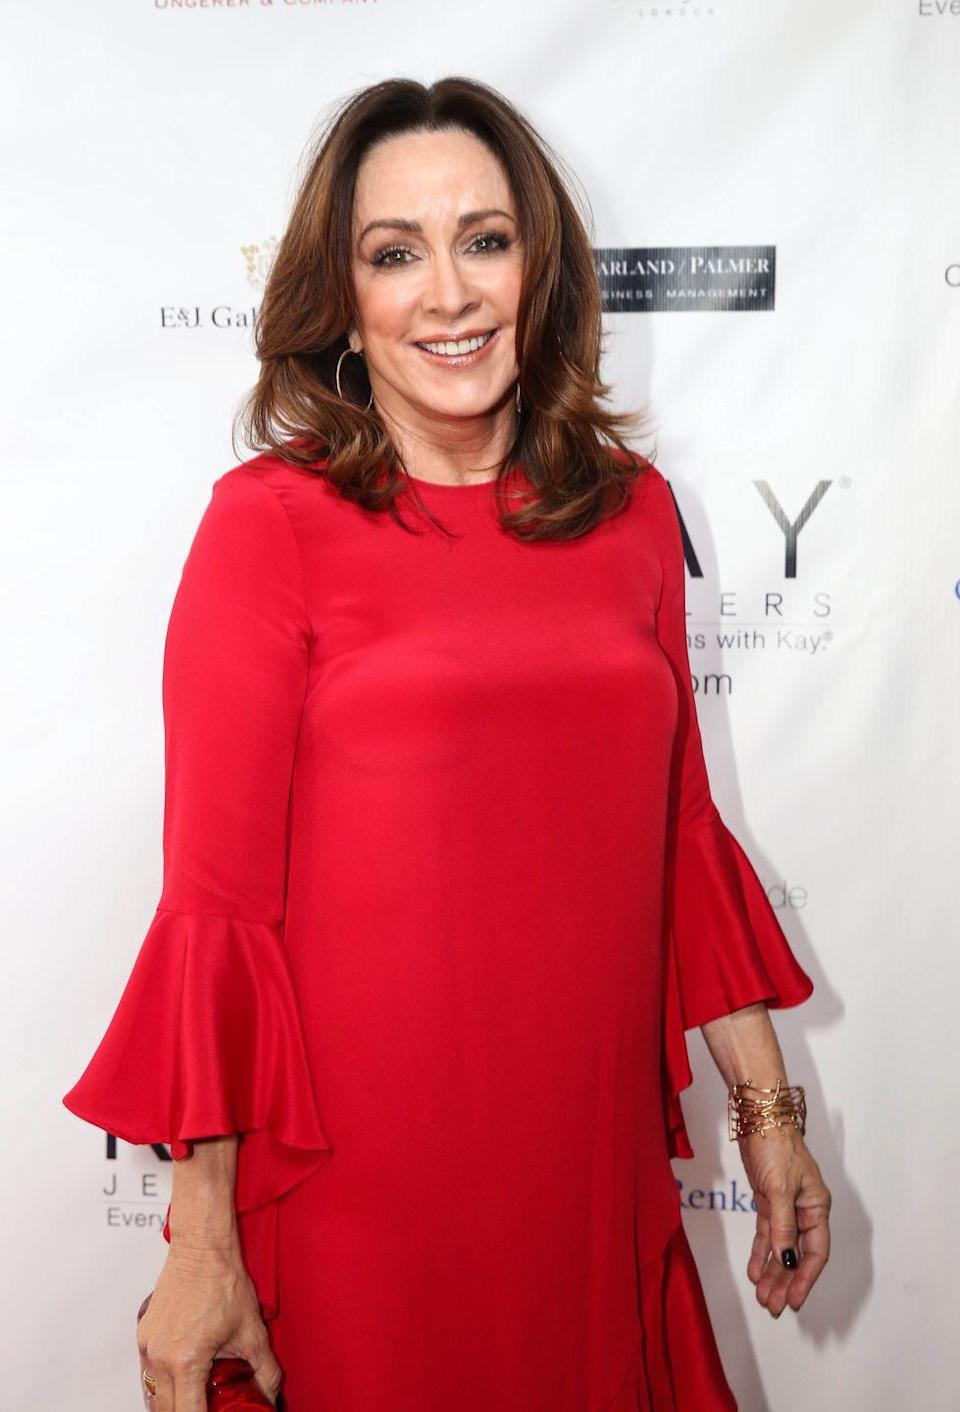 """<p>The star of <em>The Middle </em>had a tummy tuck and breast reduction in 2003. """"It's better to be honest if you can. There is a lot in Hollywood that is not as it seems,"""" Heaton <span class=""""redactor-unlink"""">told </span><a href=""""http://www.people.com/people/archive/article/0,,20140945,00.html"""" rel=""""nofollow noopener"""" target=""""_blank"""" data-ylk=""""slk:People"""" class=""""link rapid-noclick-resp"""">People</a> at the time. """"I had four C-sections and my stomach looked like the map of the world. My breasts were hanging down to here from breastfeeding those babies, and my nipples were like platters. I wanted to fit into the gowns that I finally got to wear.""""</p>"""